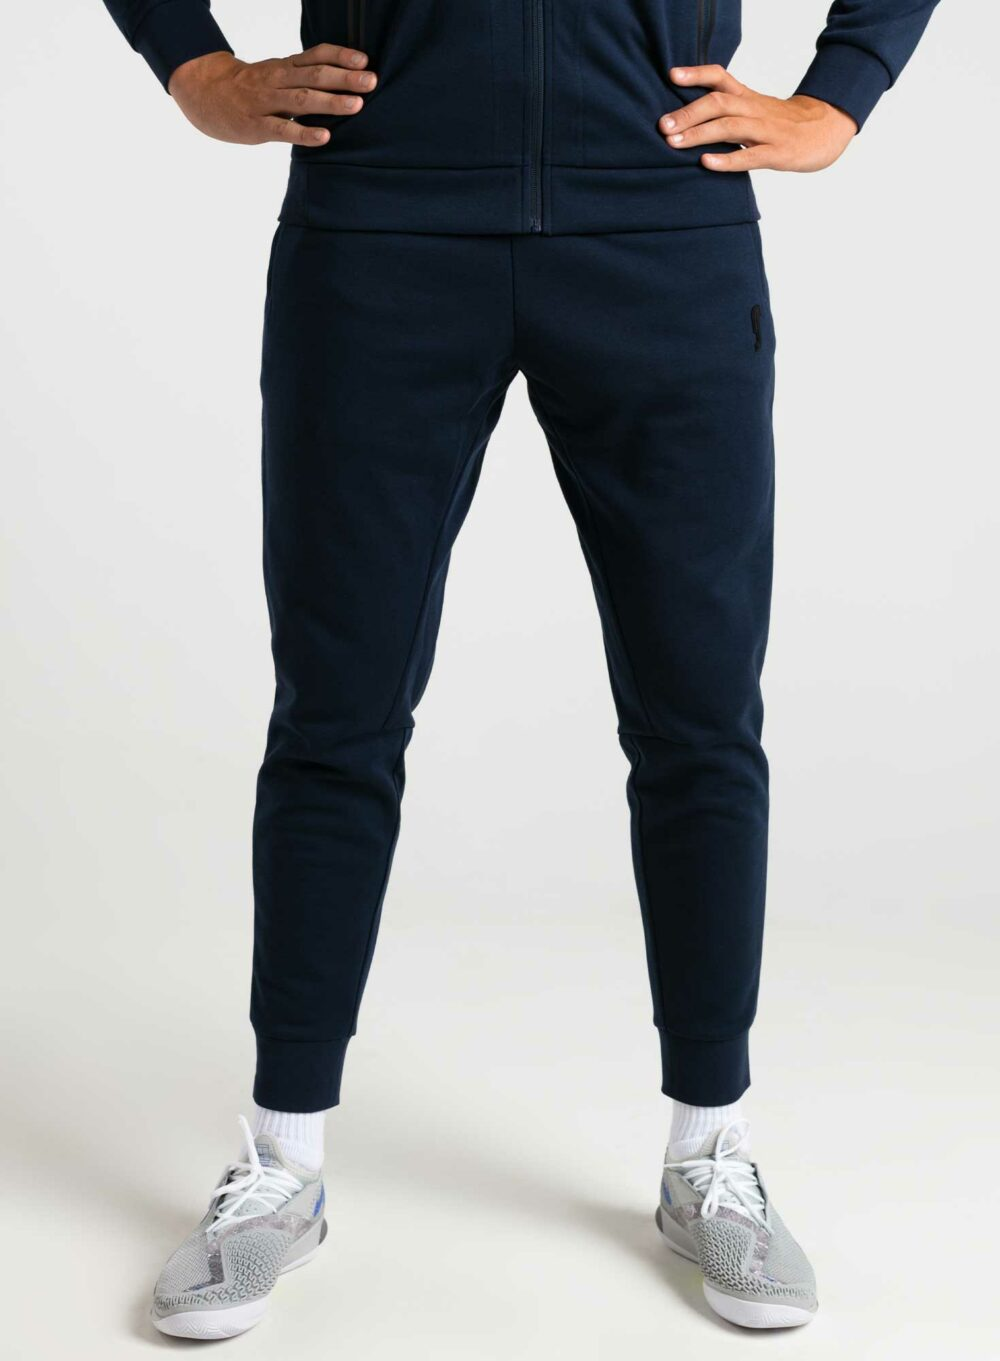 rs_court_pants_navy_1